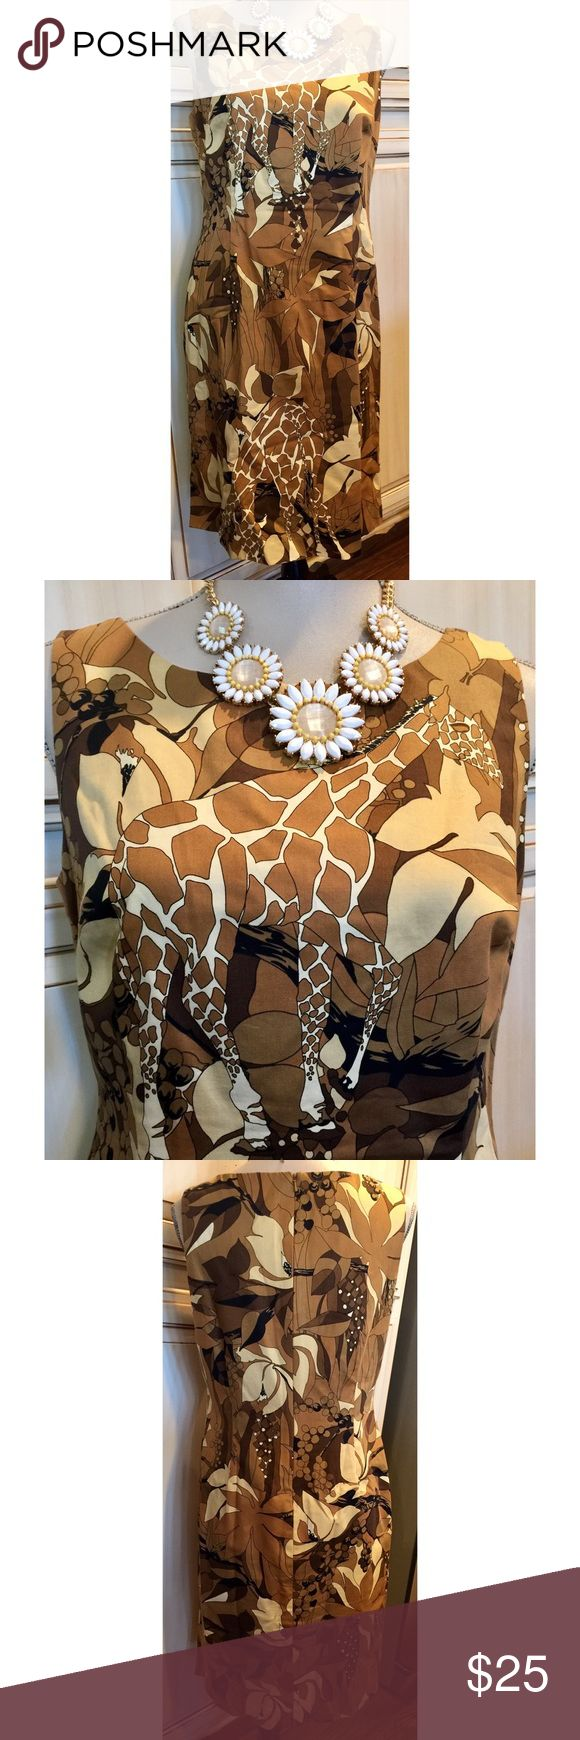 """Talbots Petite Brown & Tan Animal Print Shift❤️ Talbots Petite animal print shift. Hidden back zipper. Bust 18"""" across. Waist 16"""" across. Length is 36"""" from shoulder to hem. Lined. 100% cotton. ❤ Talbots Dresses"""